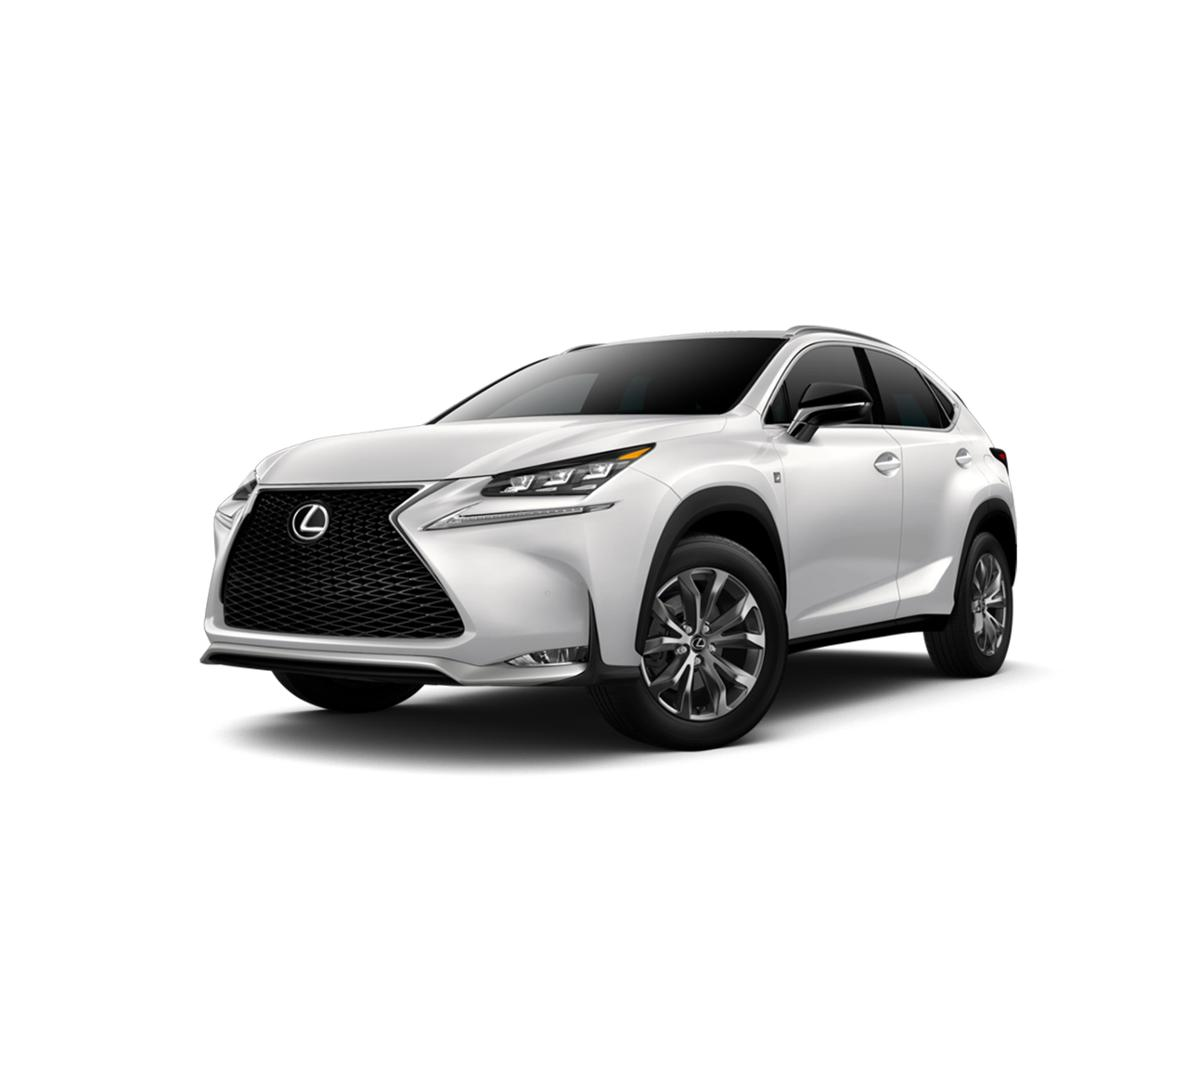 2017 Lexus NX Turbo Vehicle Photo in Modesto, CA 95356